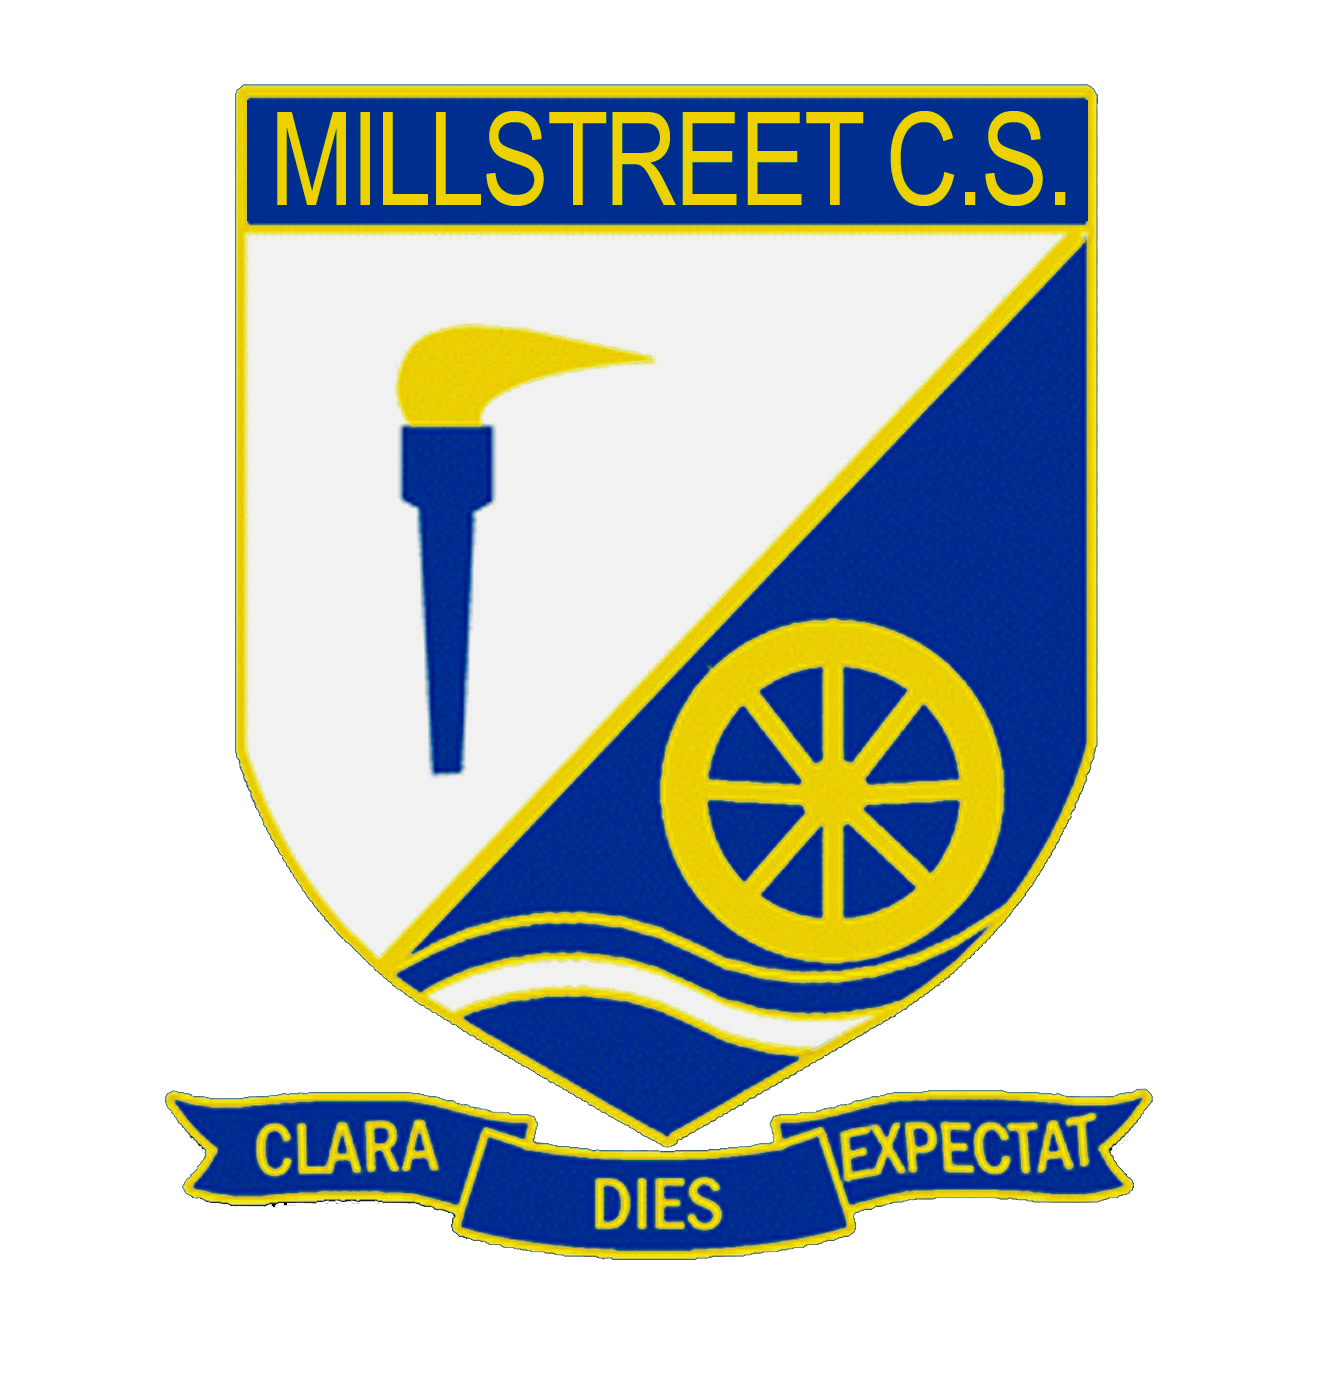 Millstreet Community School